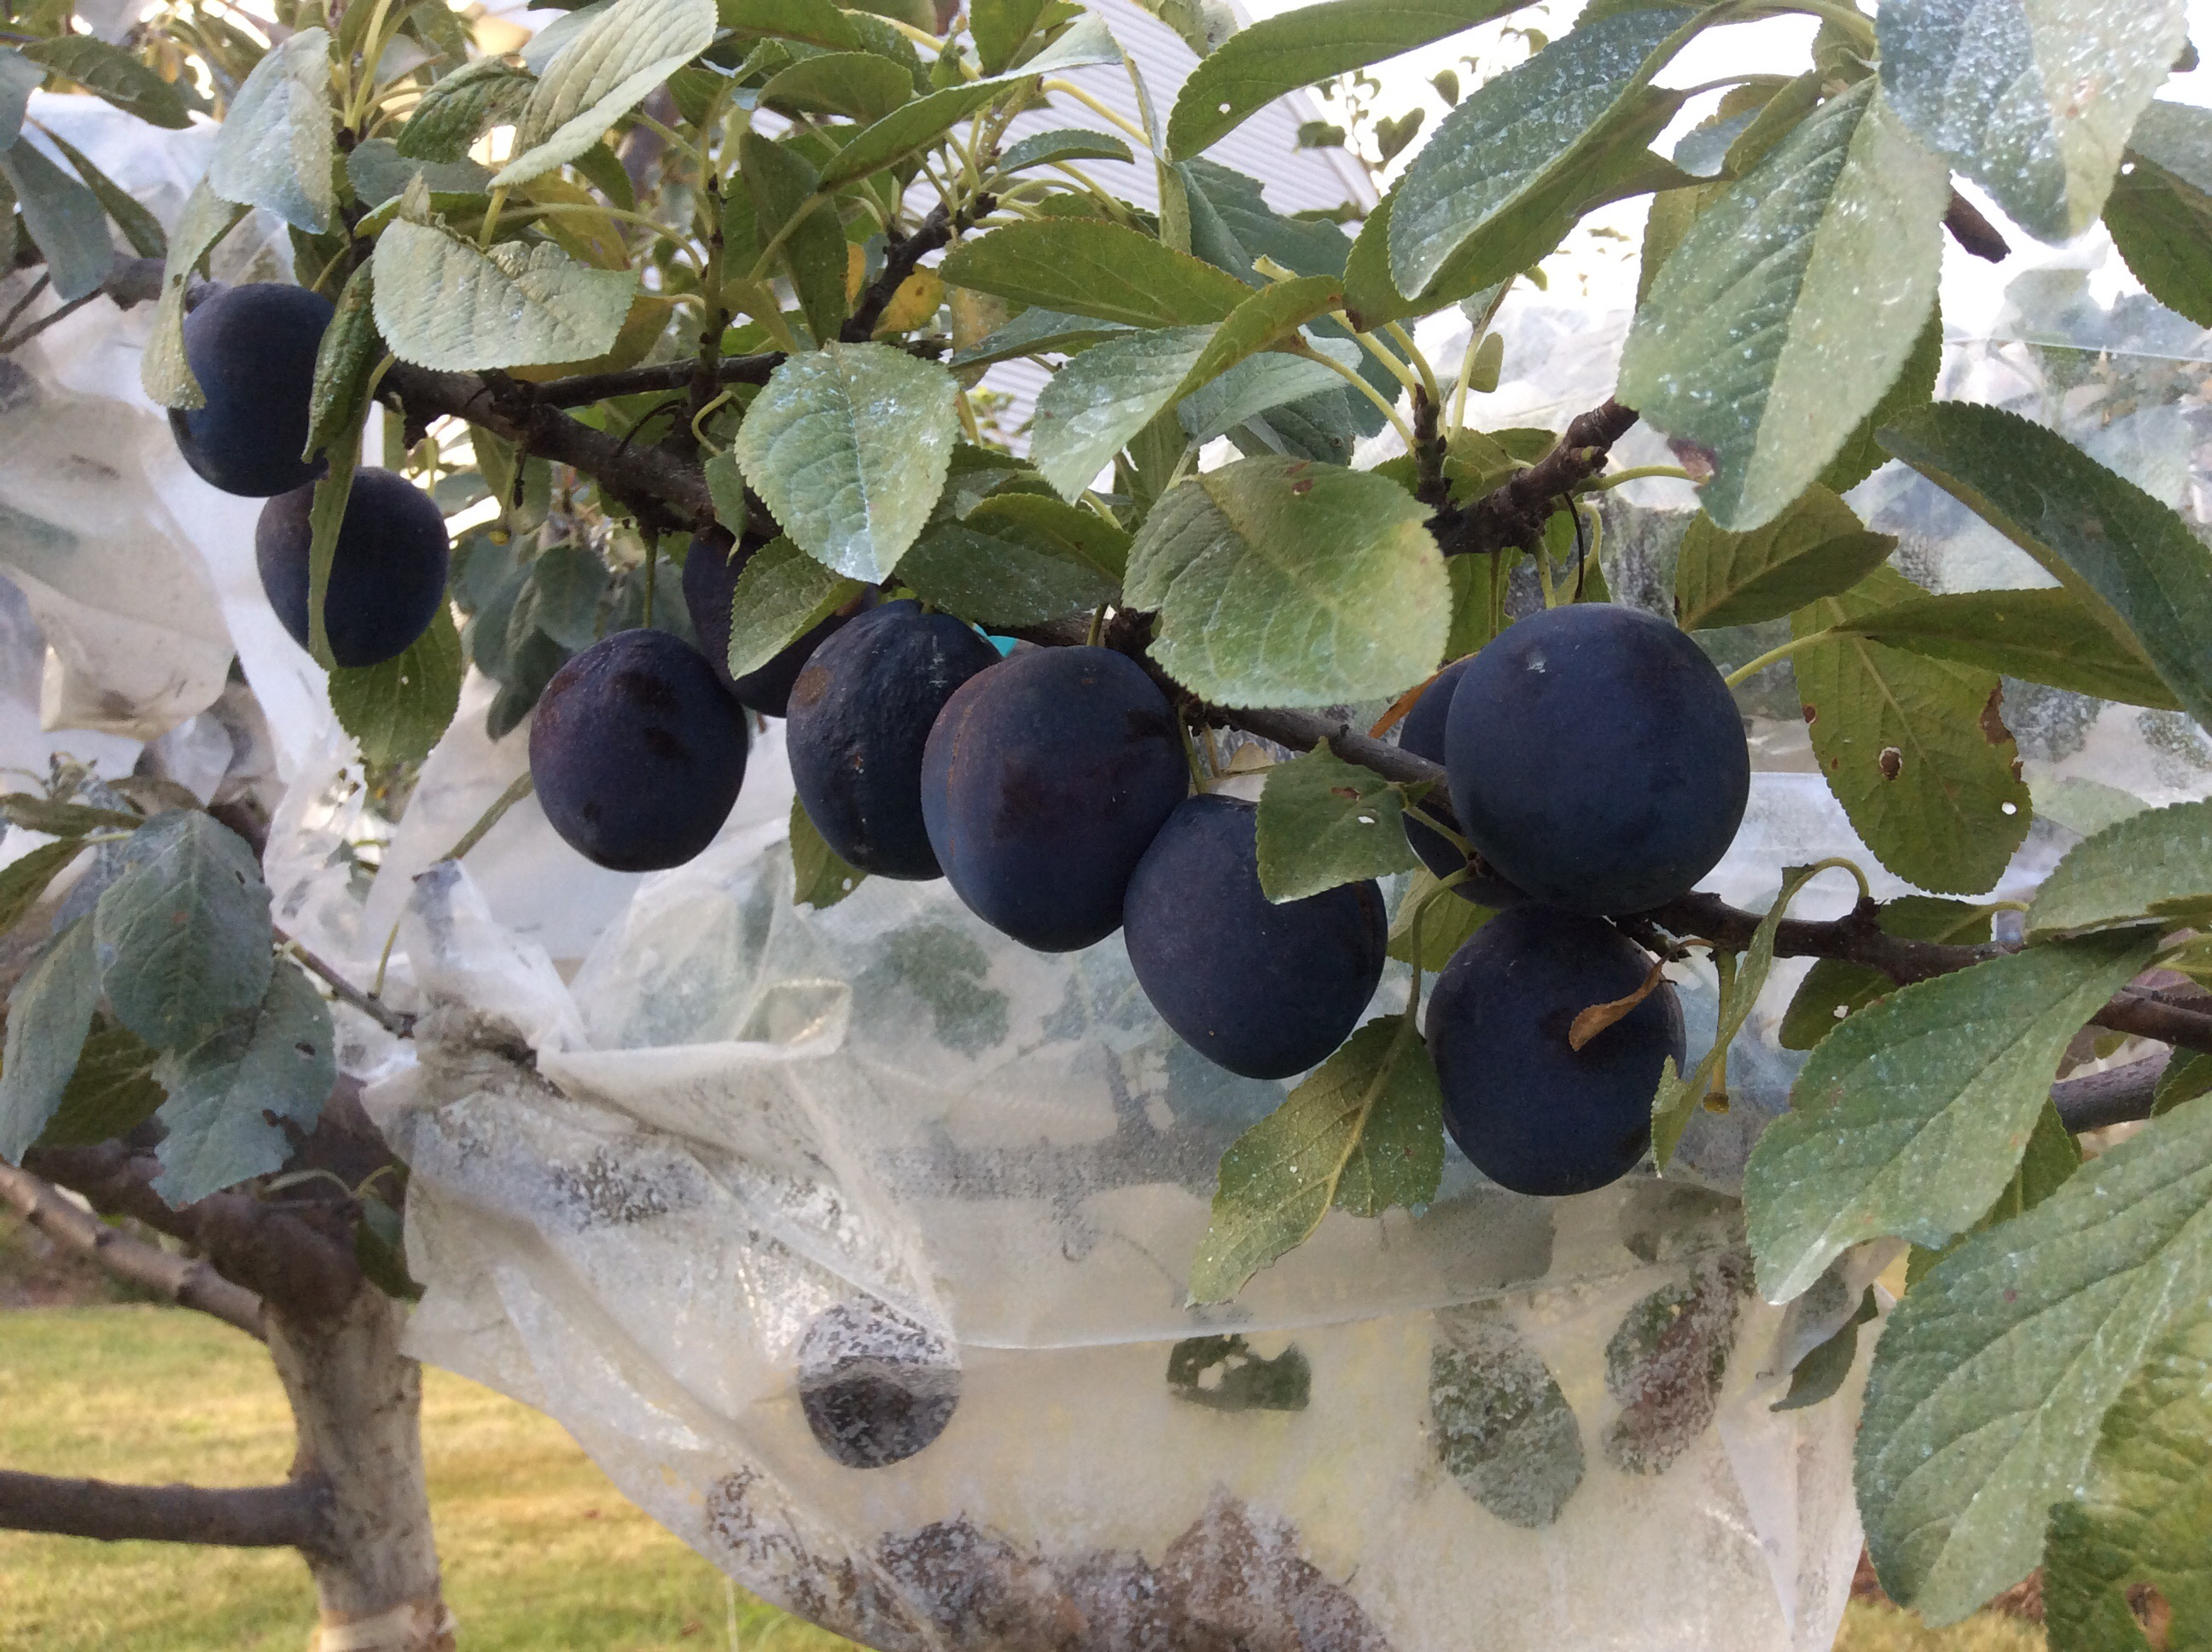 bagging fruit on trees